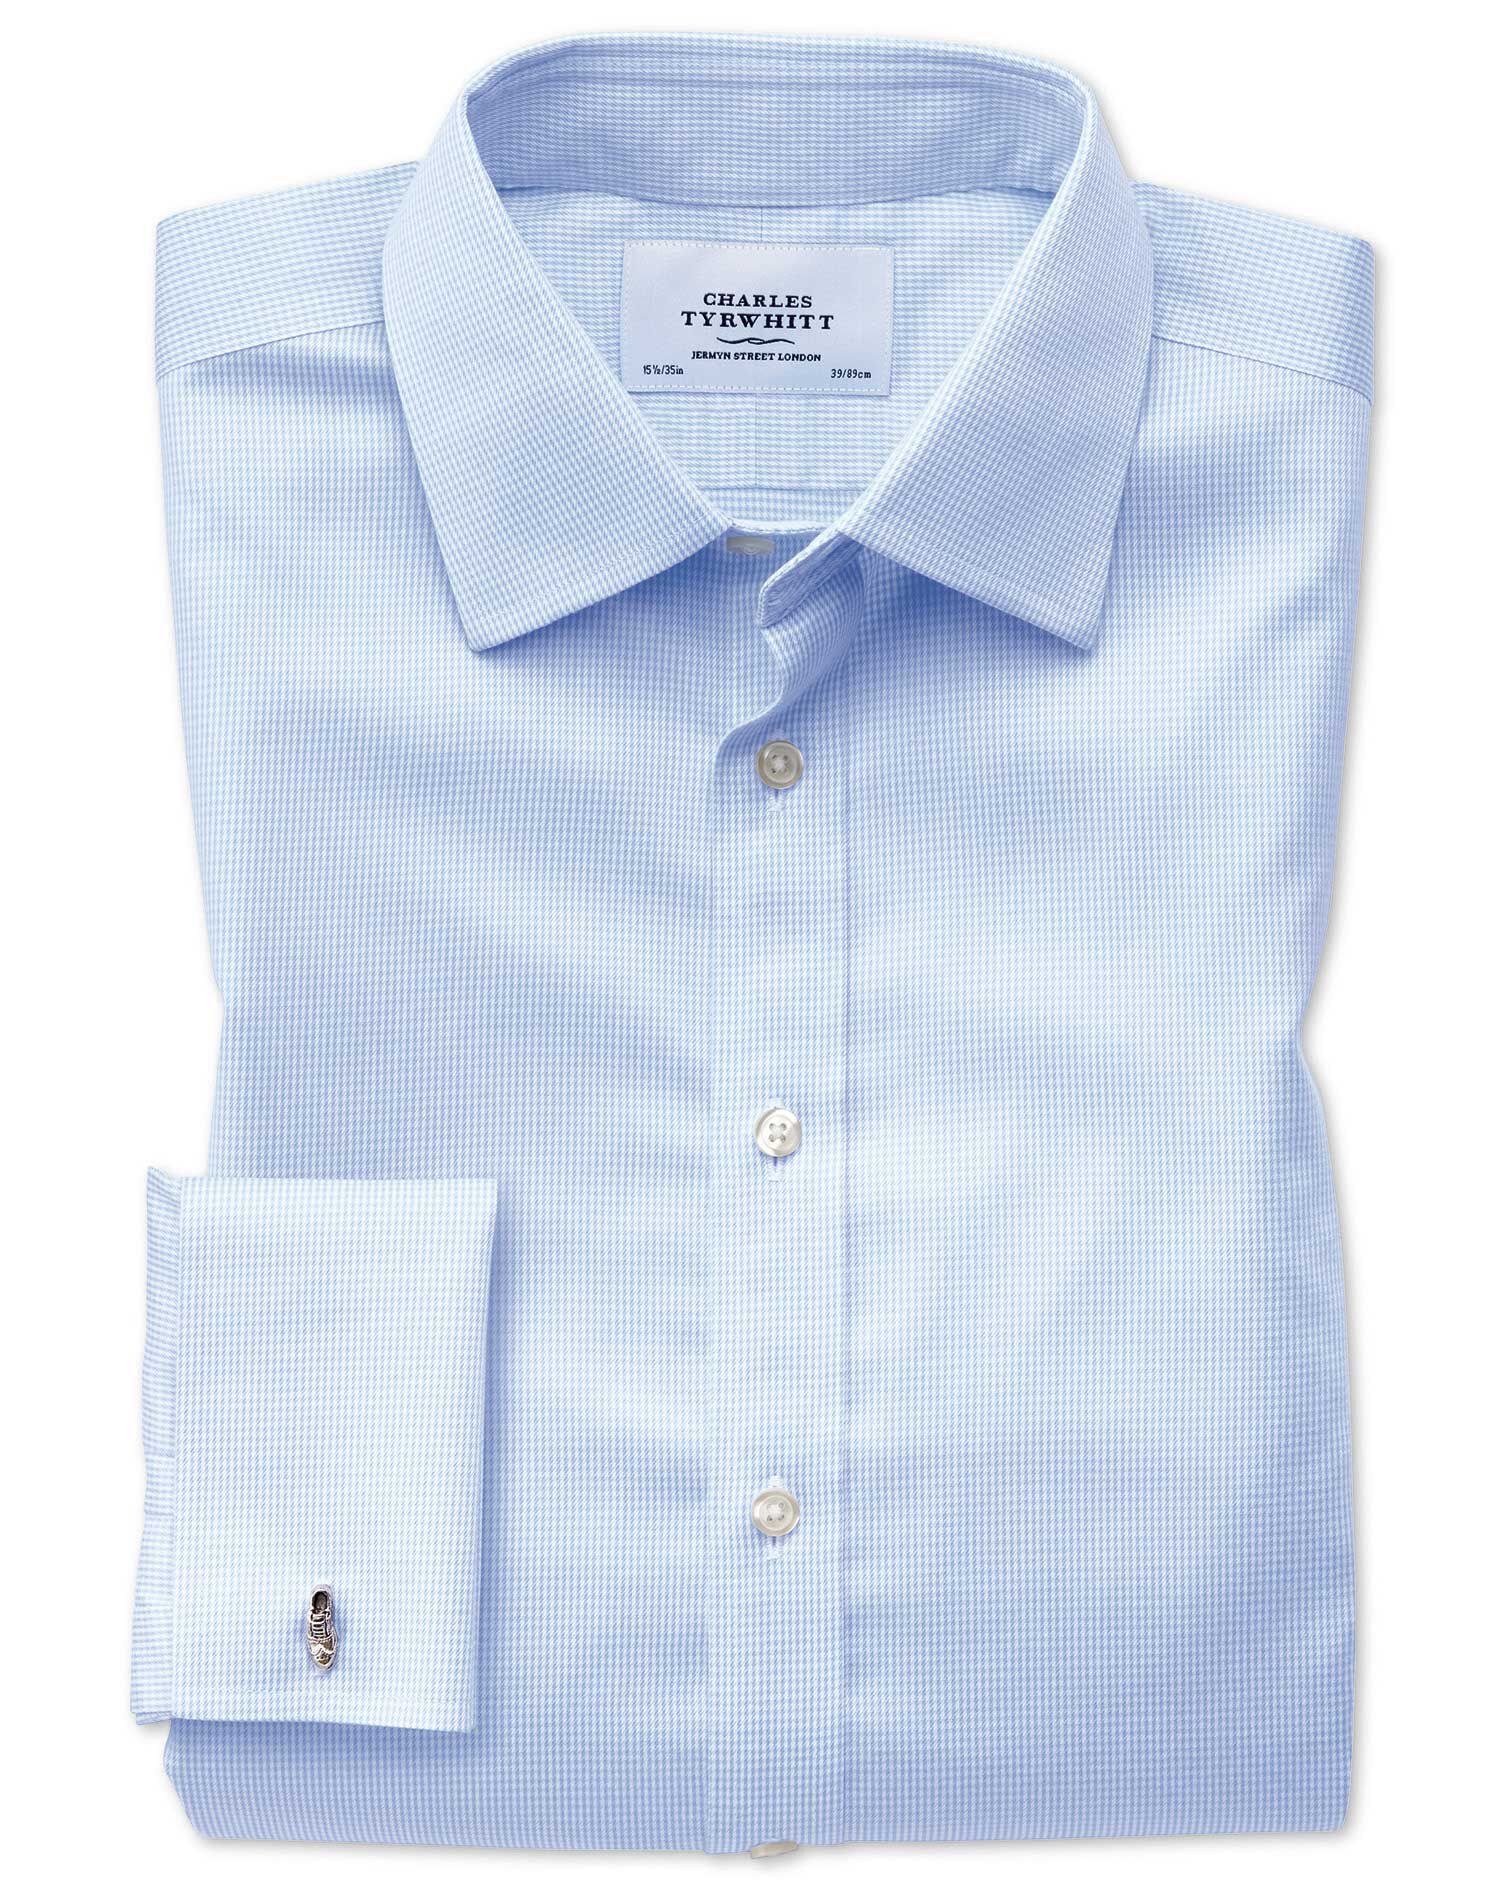 Extra Slim Fit Non-Iron Puppytooth Sky Blue Cotton Formal Shirt Single Cuff Size 17/37 by Charles Ty